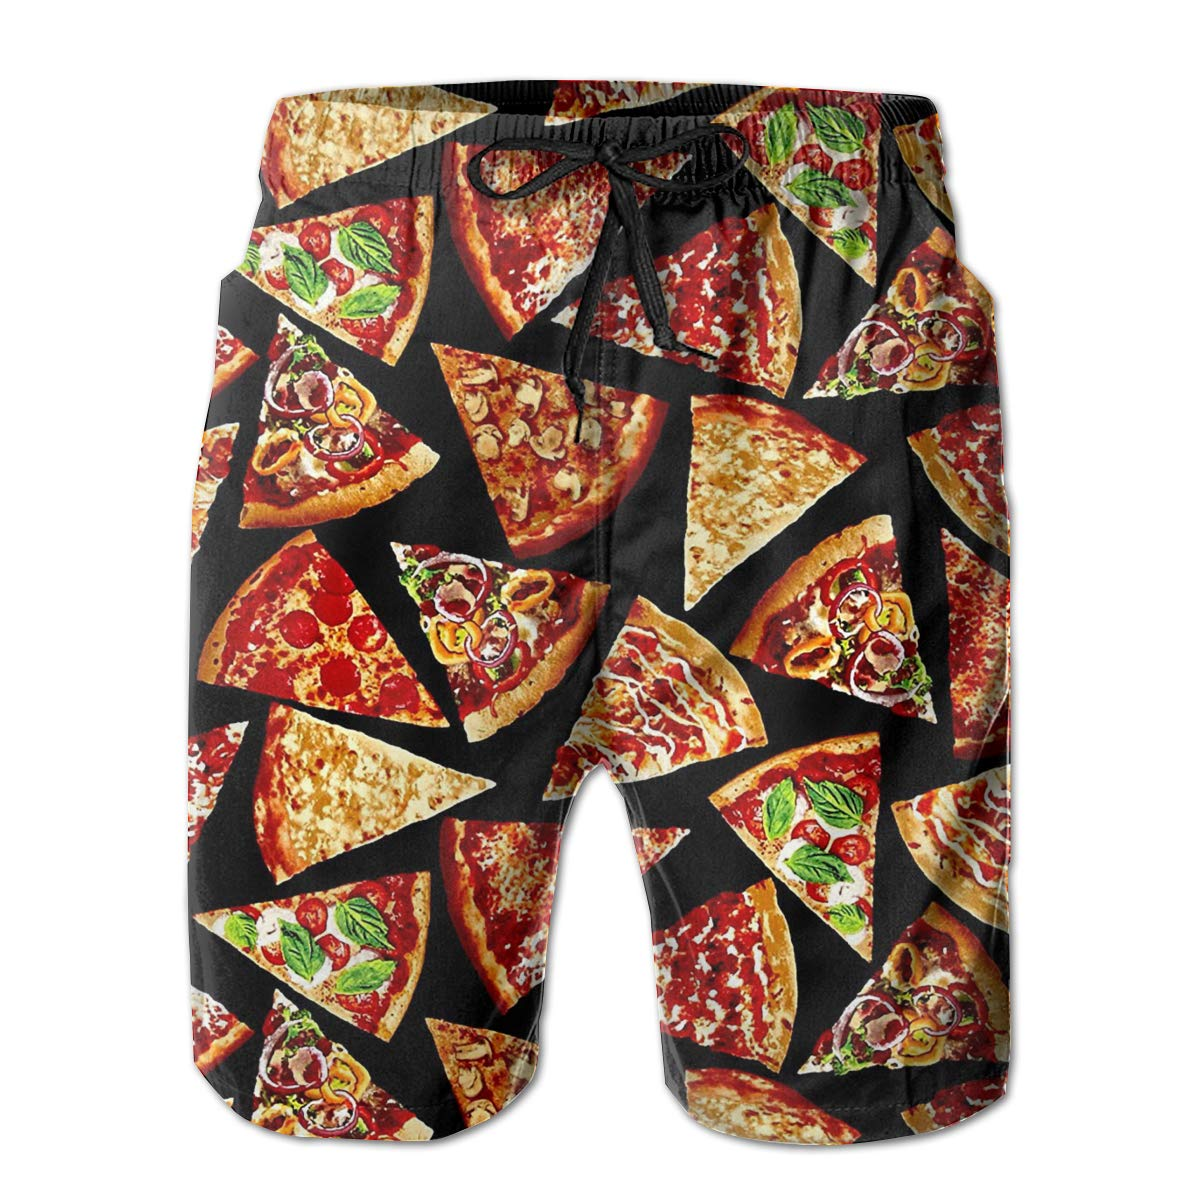 TR2YU7YT Foodie Pizza Slices Casual Mens Swim Trunks Quick Dry Printed Beach Shorts Summer Boardshorts Bathing Suits with Mesh Lining